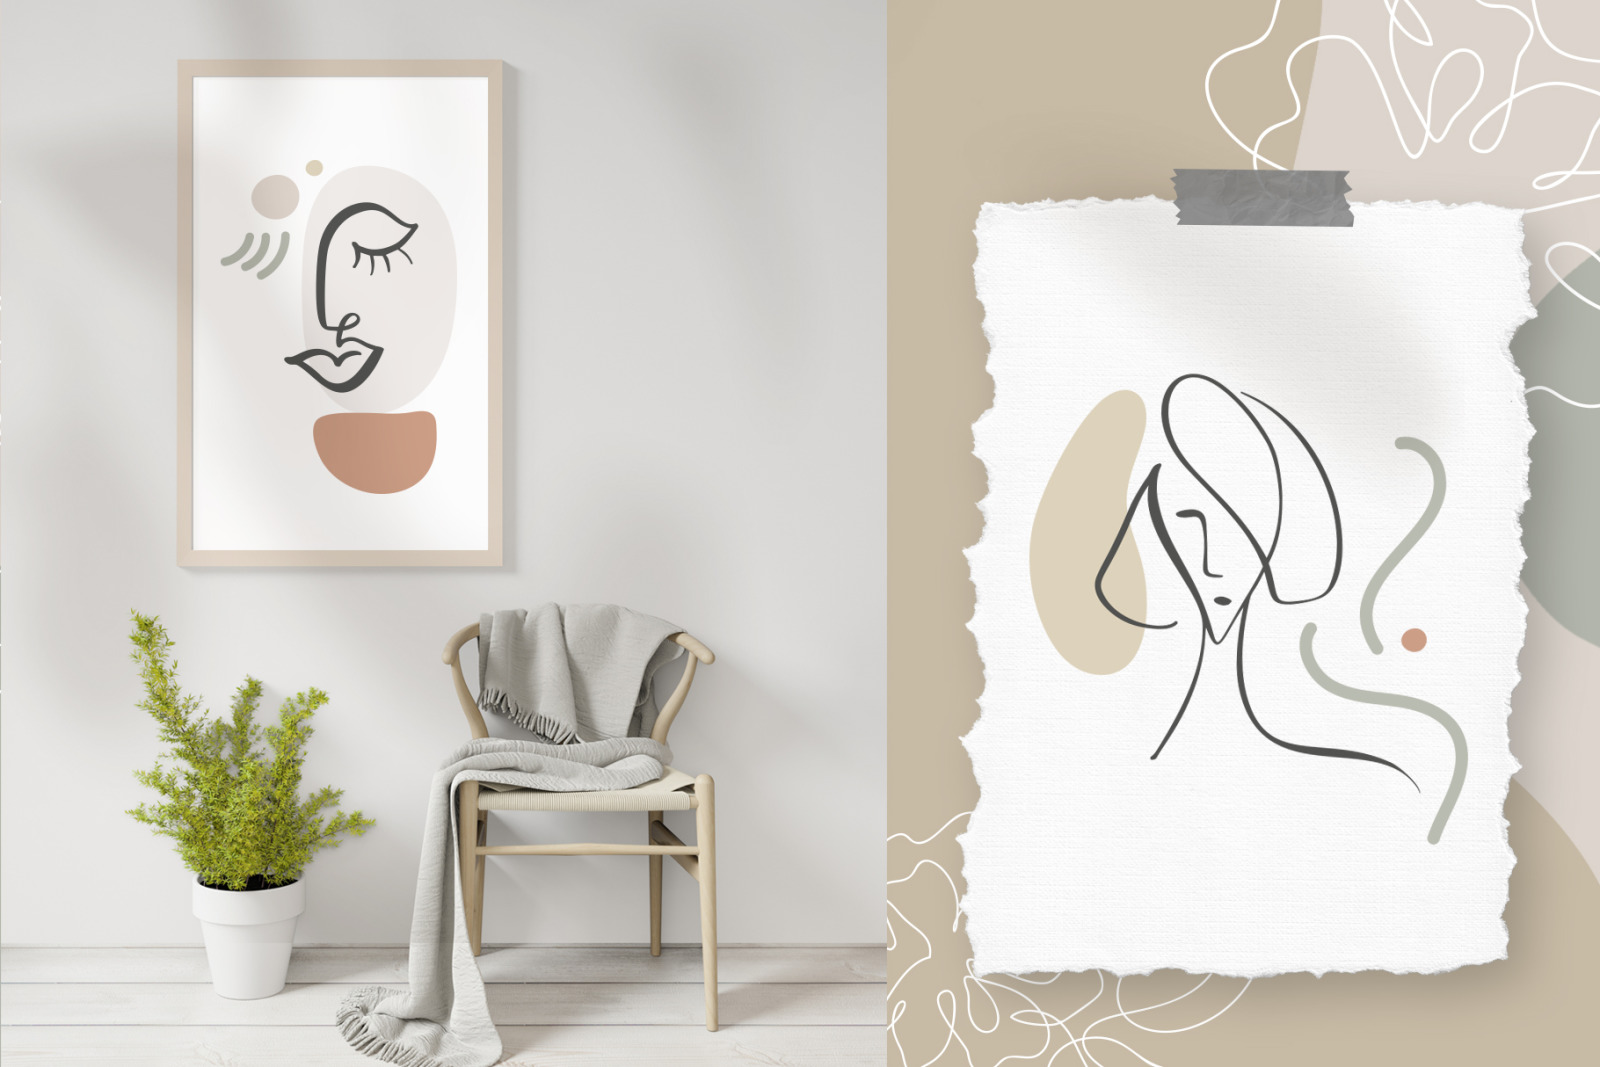 Abstract Line Art Faces